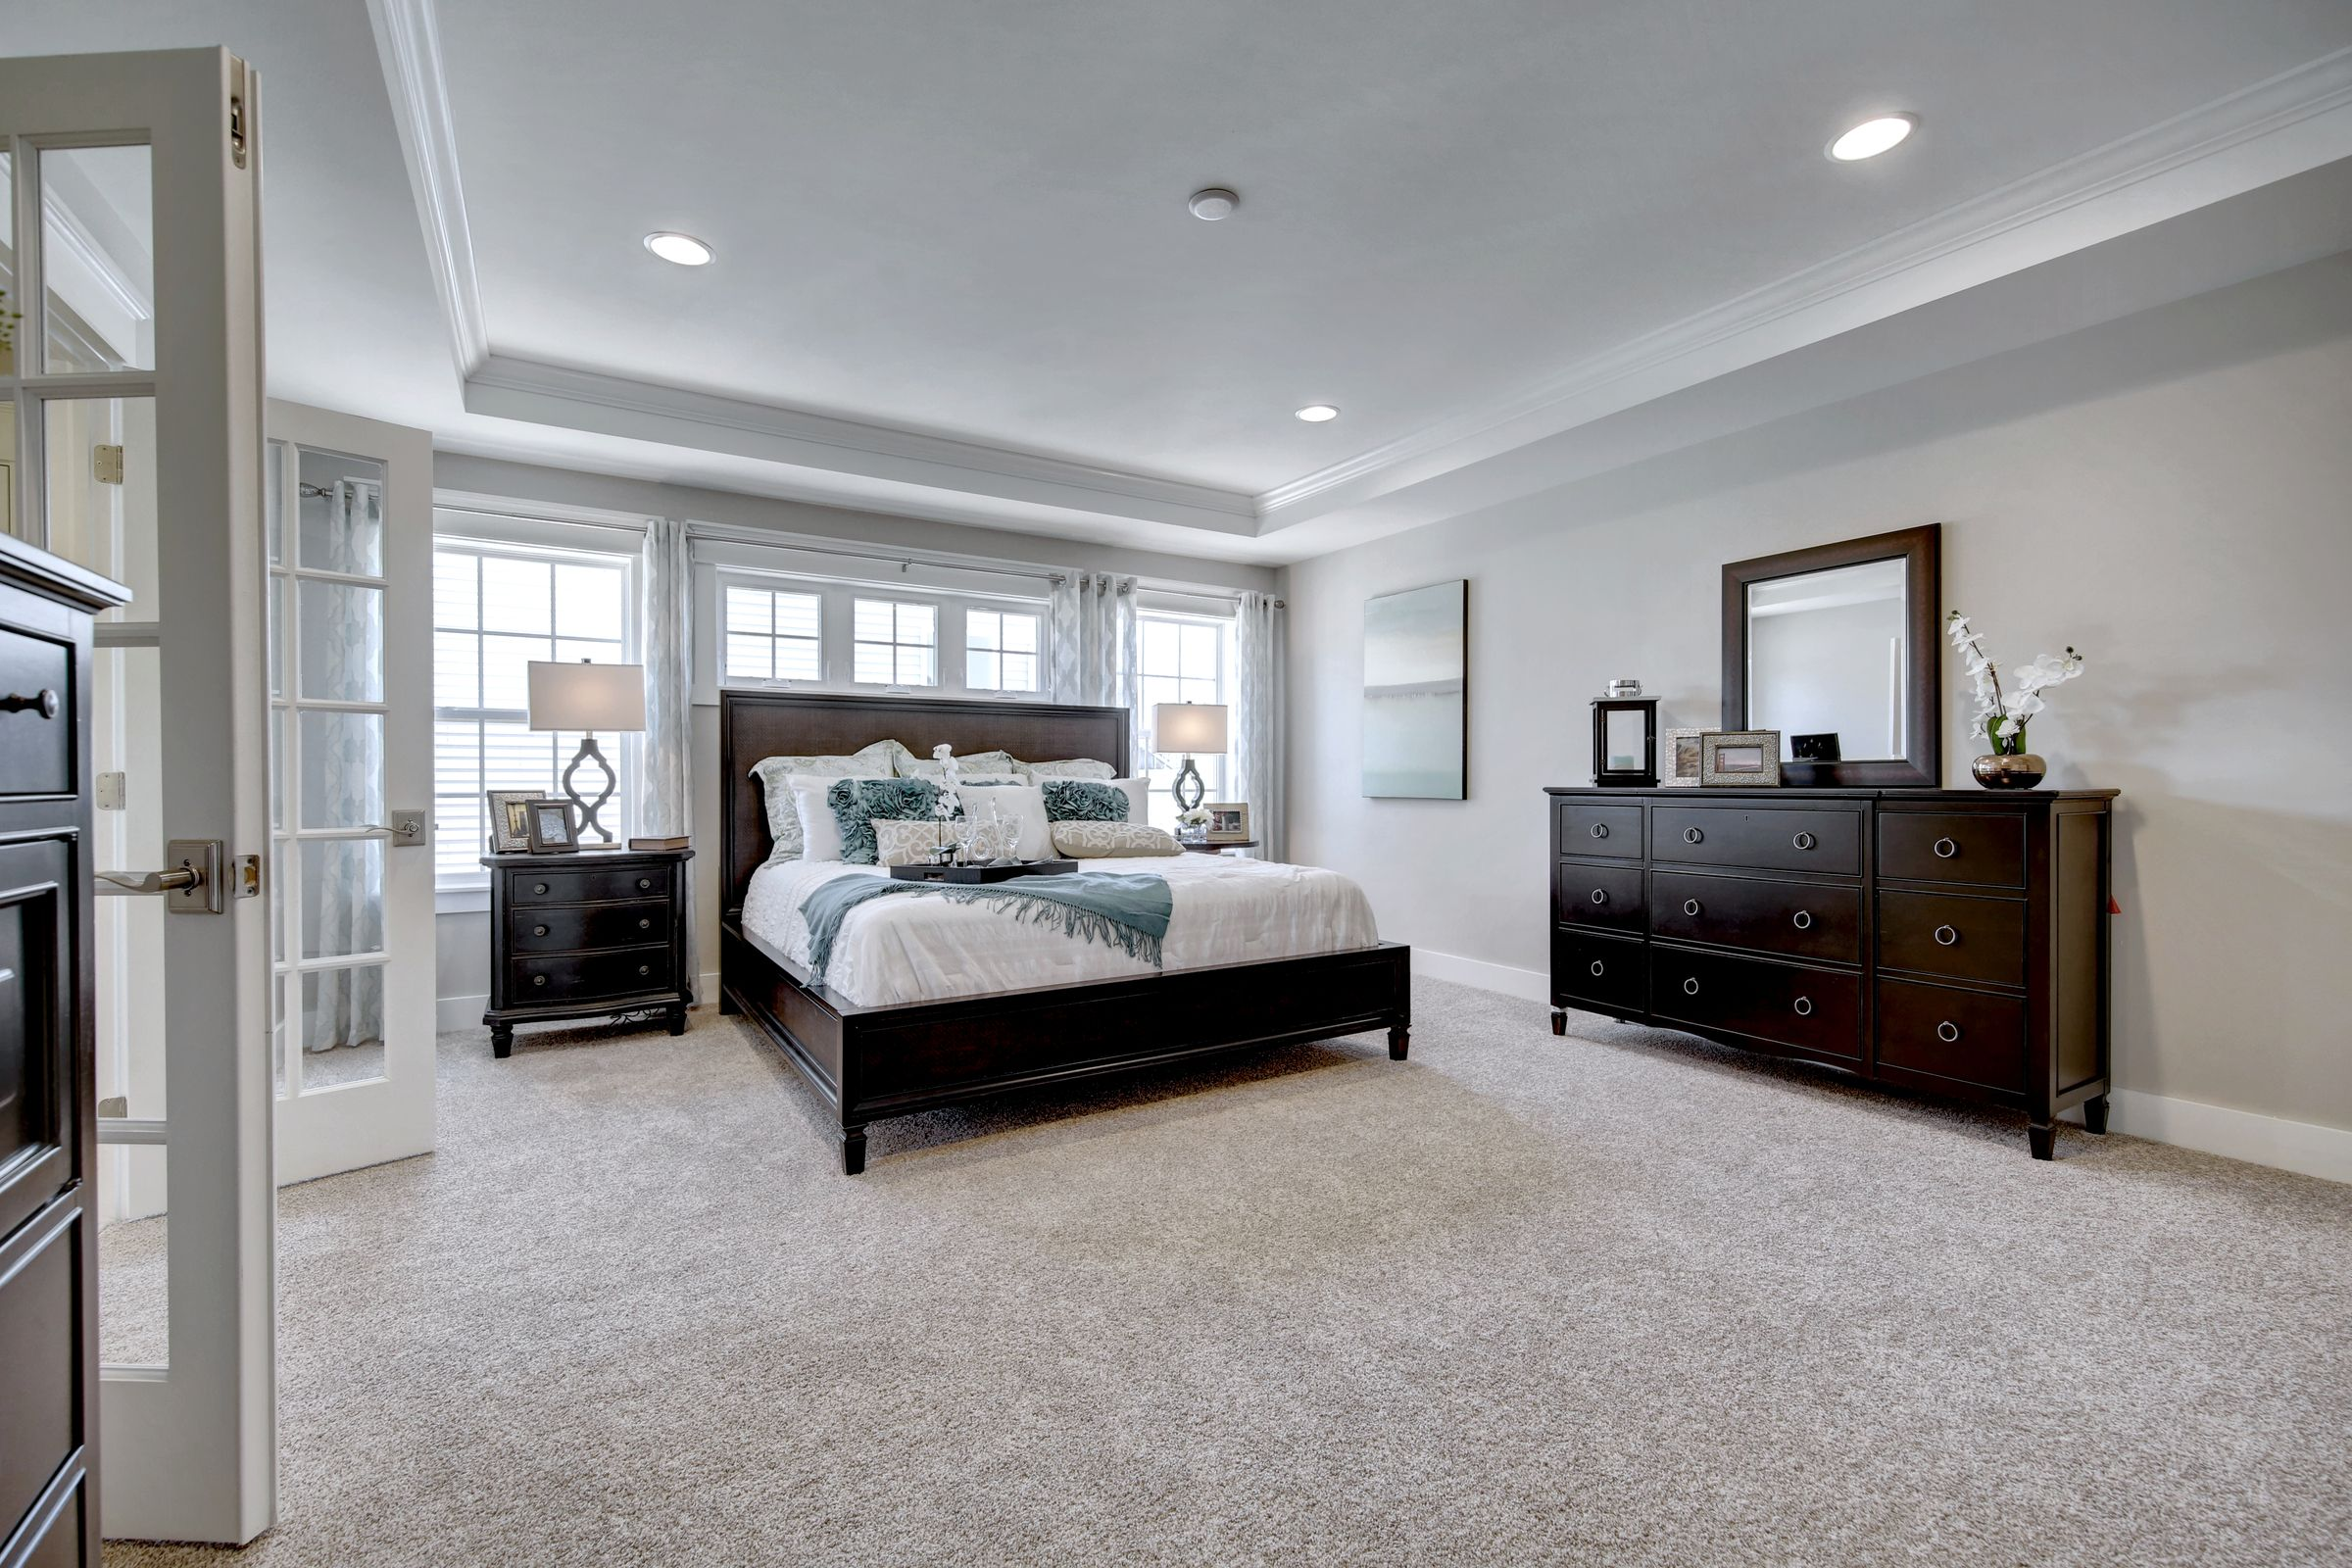 Bedroom featured in the Ethan Traditional By Keystone Custom Homes in Reading, PA